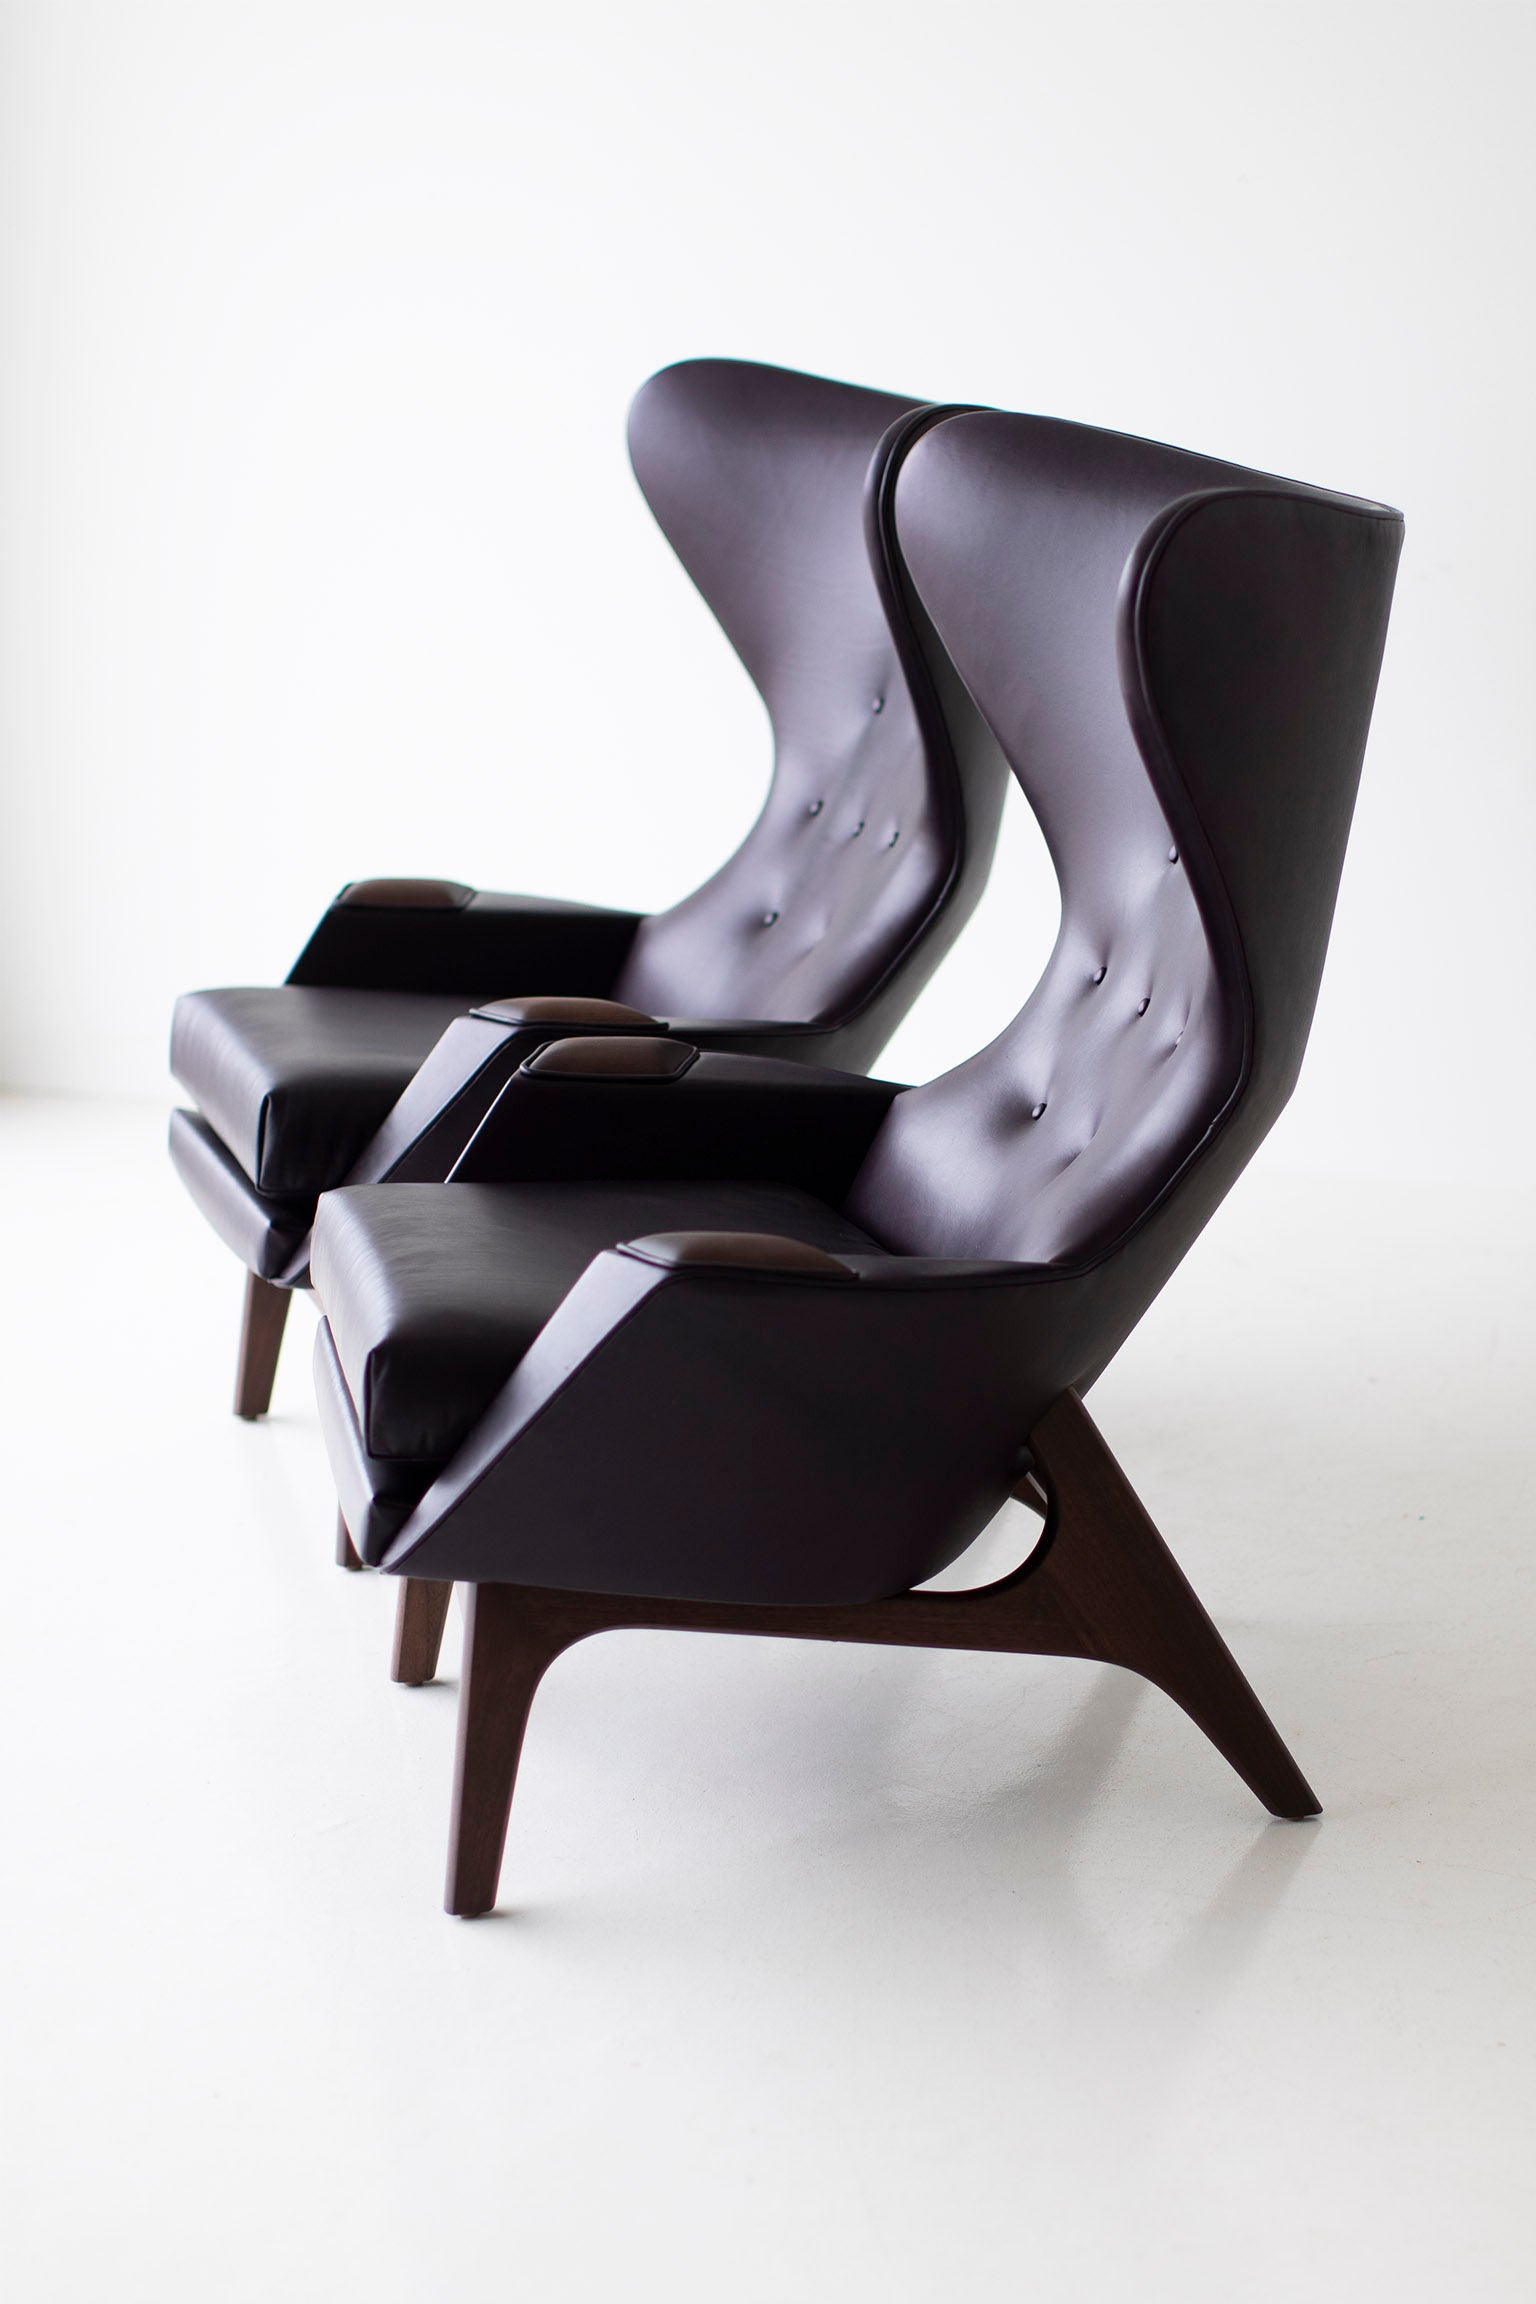 0T3A9972-large-leather-wing-chairs-1407-04